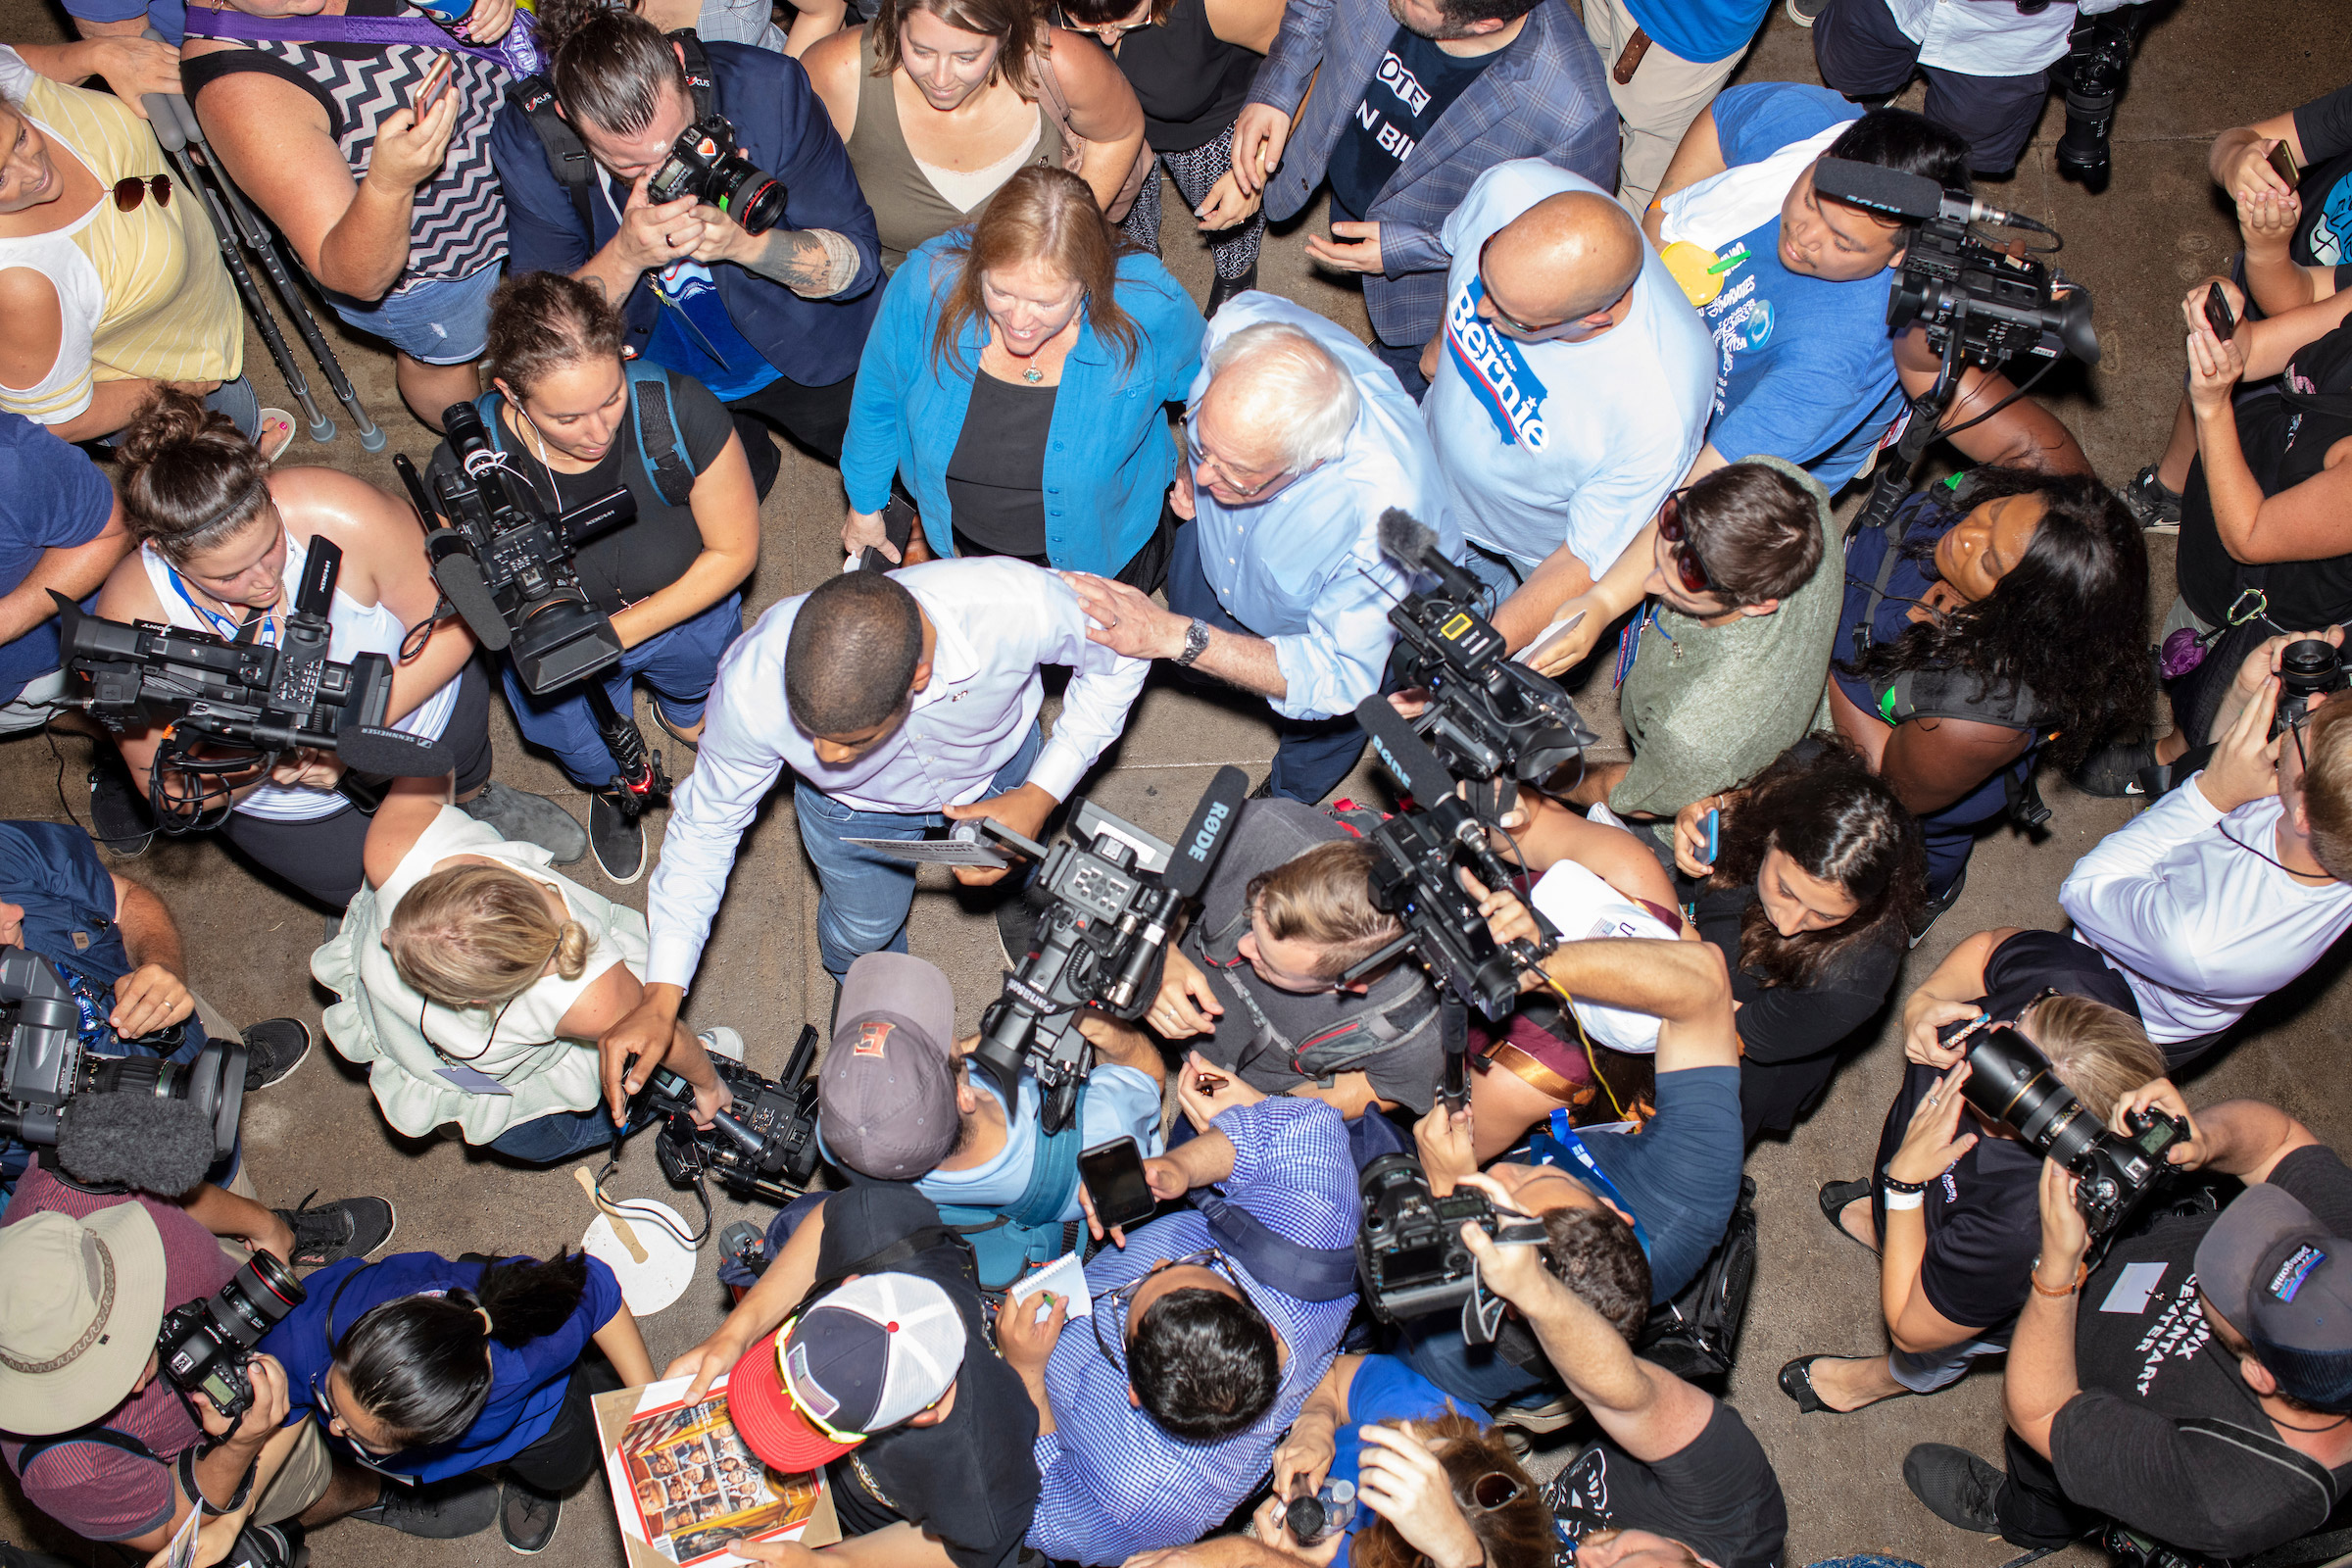 Democratic presidential candidate Bernie Sanders visits the sculpted Butter Cow in the Agriculture Building while surrounded by media and crowds on Aug. 11.